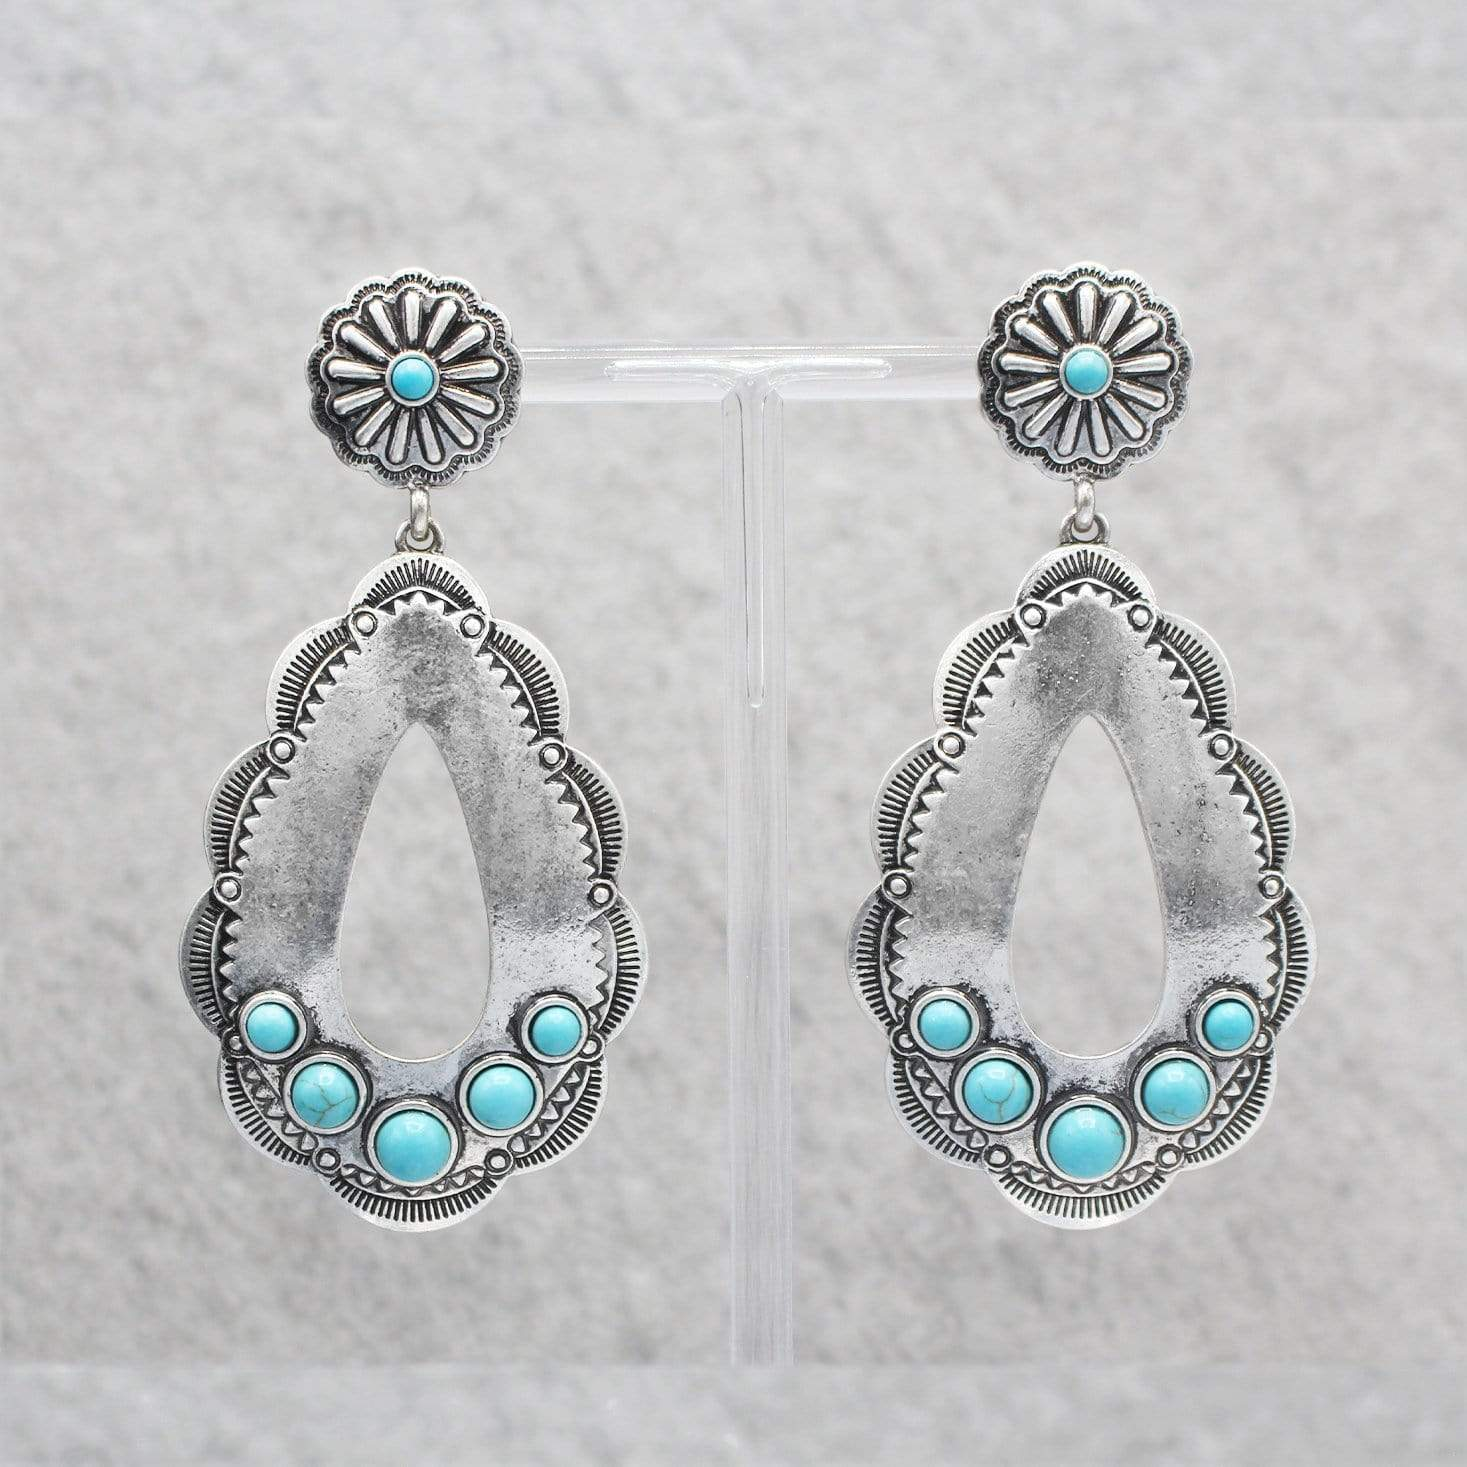 0022BOS Fashion Earrings Darla Fashion Silver Teardrop Earrings